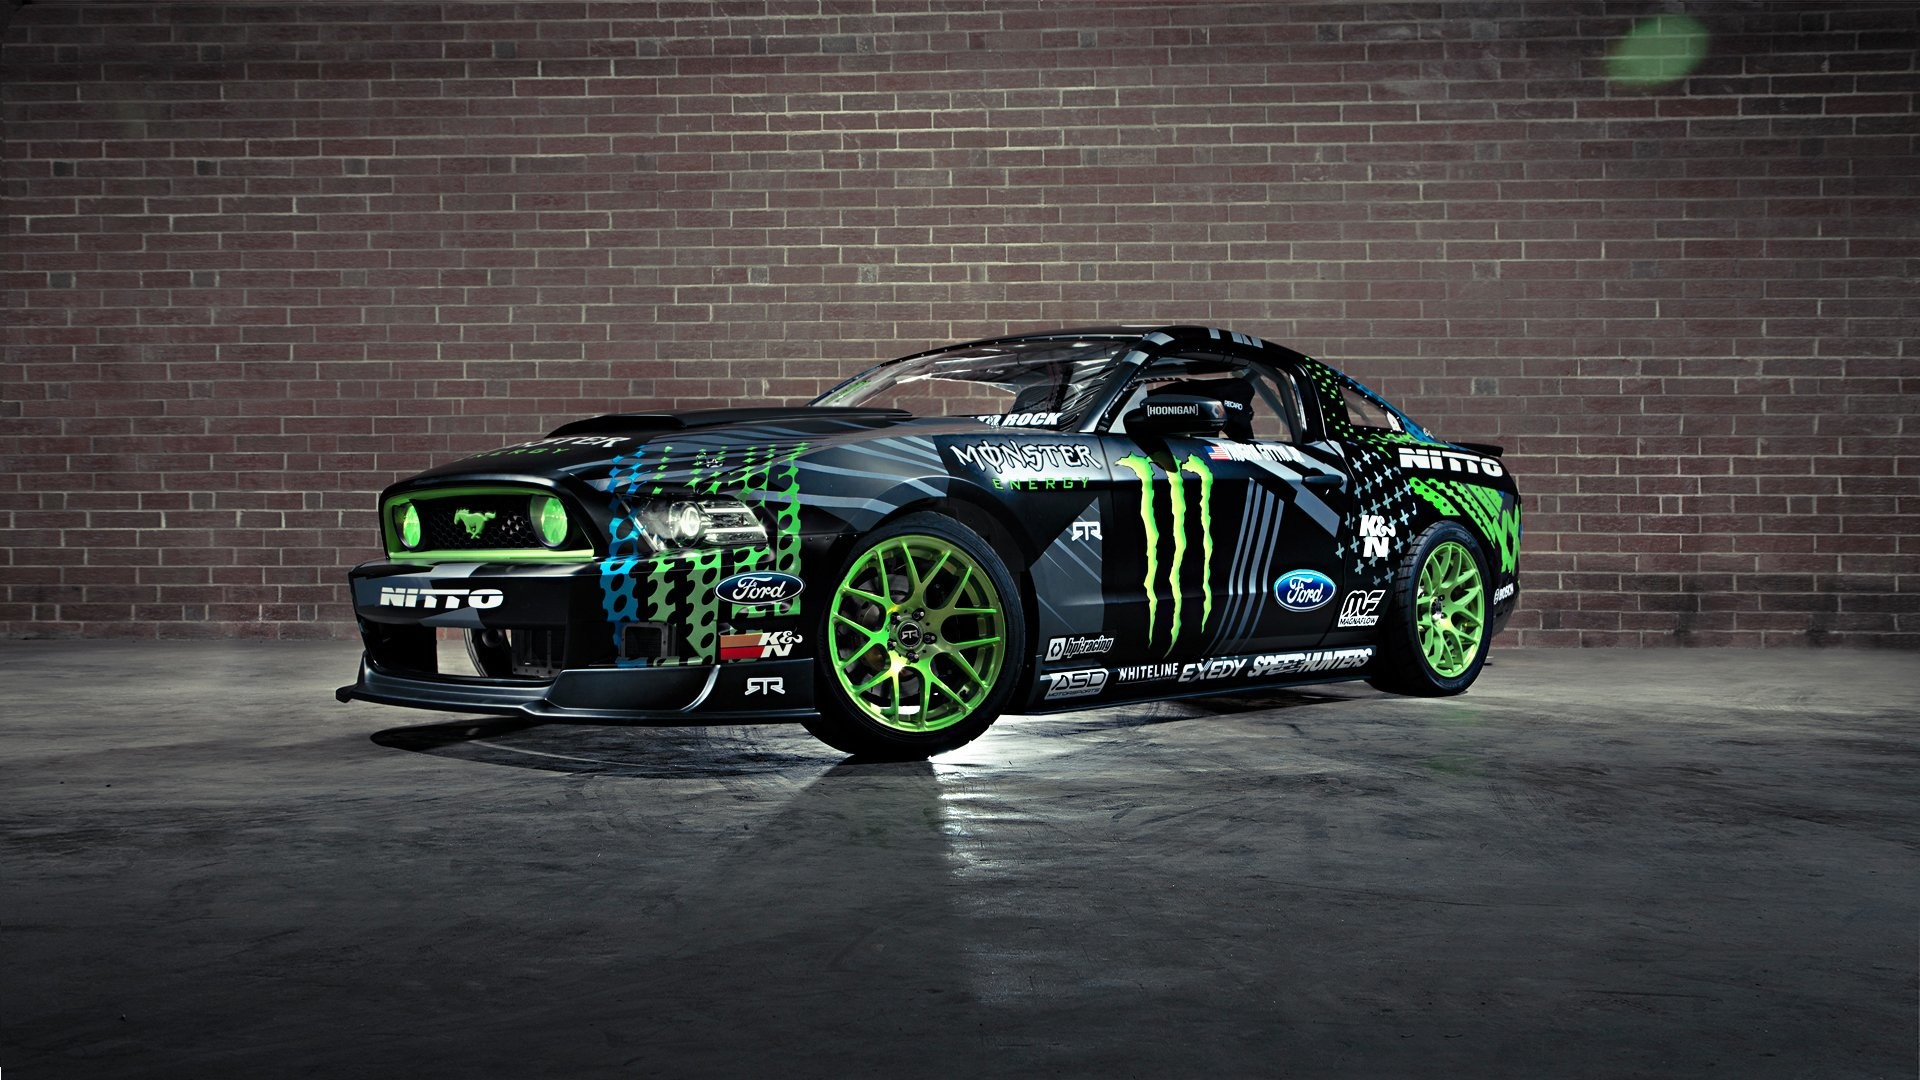 Race Car Wallpaper 1080p Monster Jam Wallpaper Desktop 51 Images